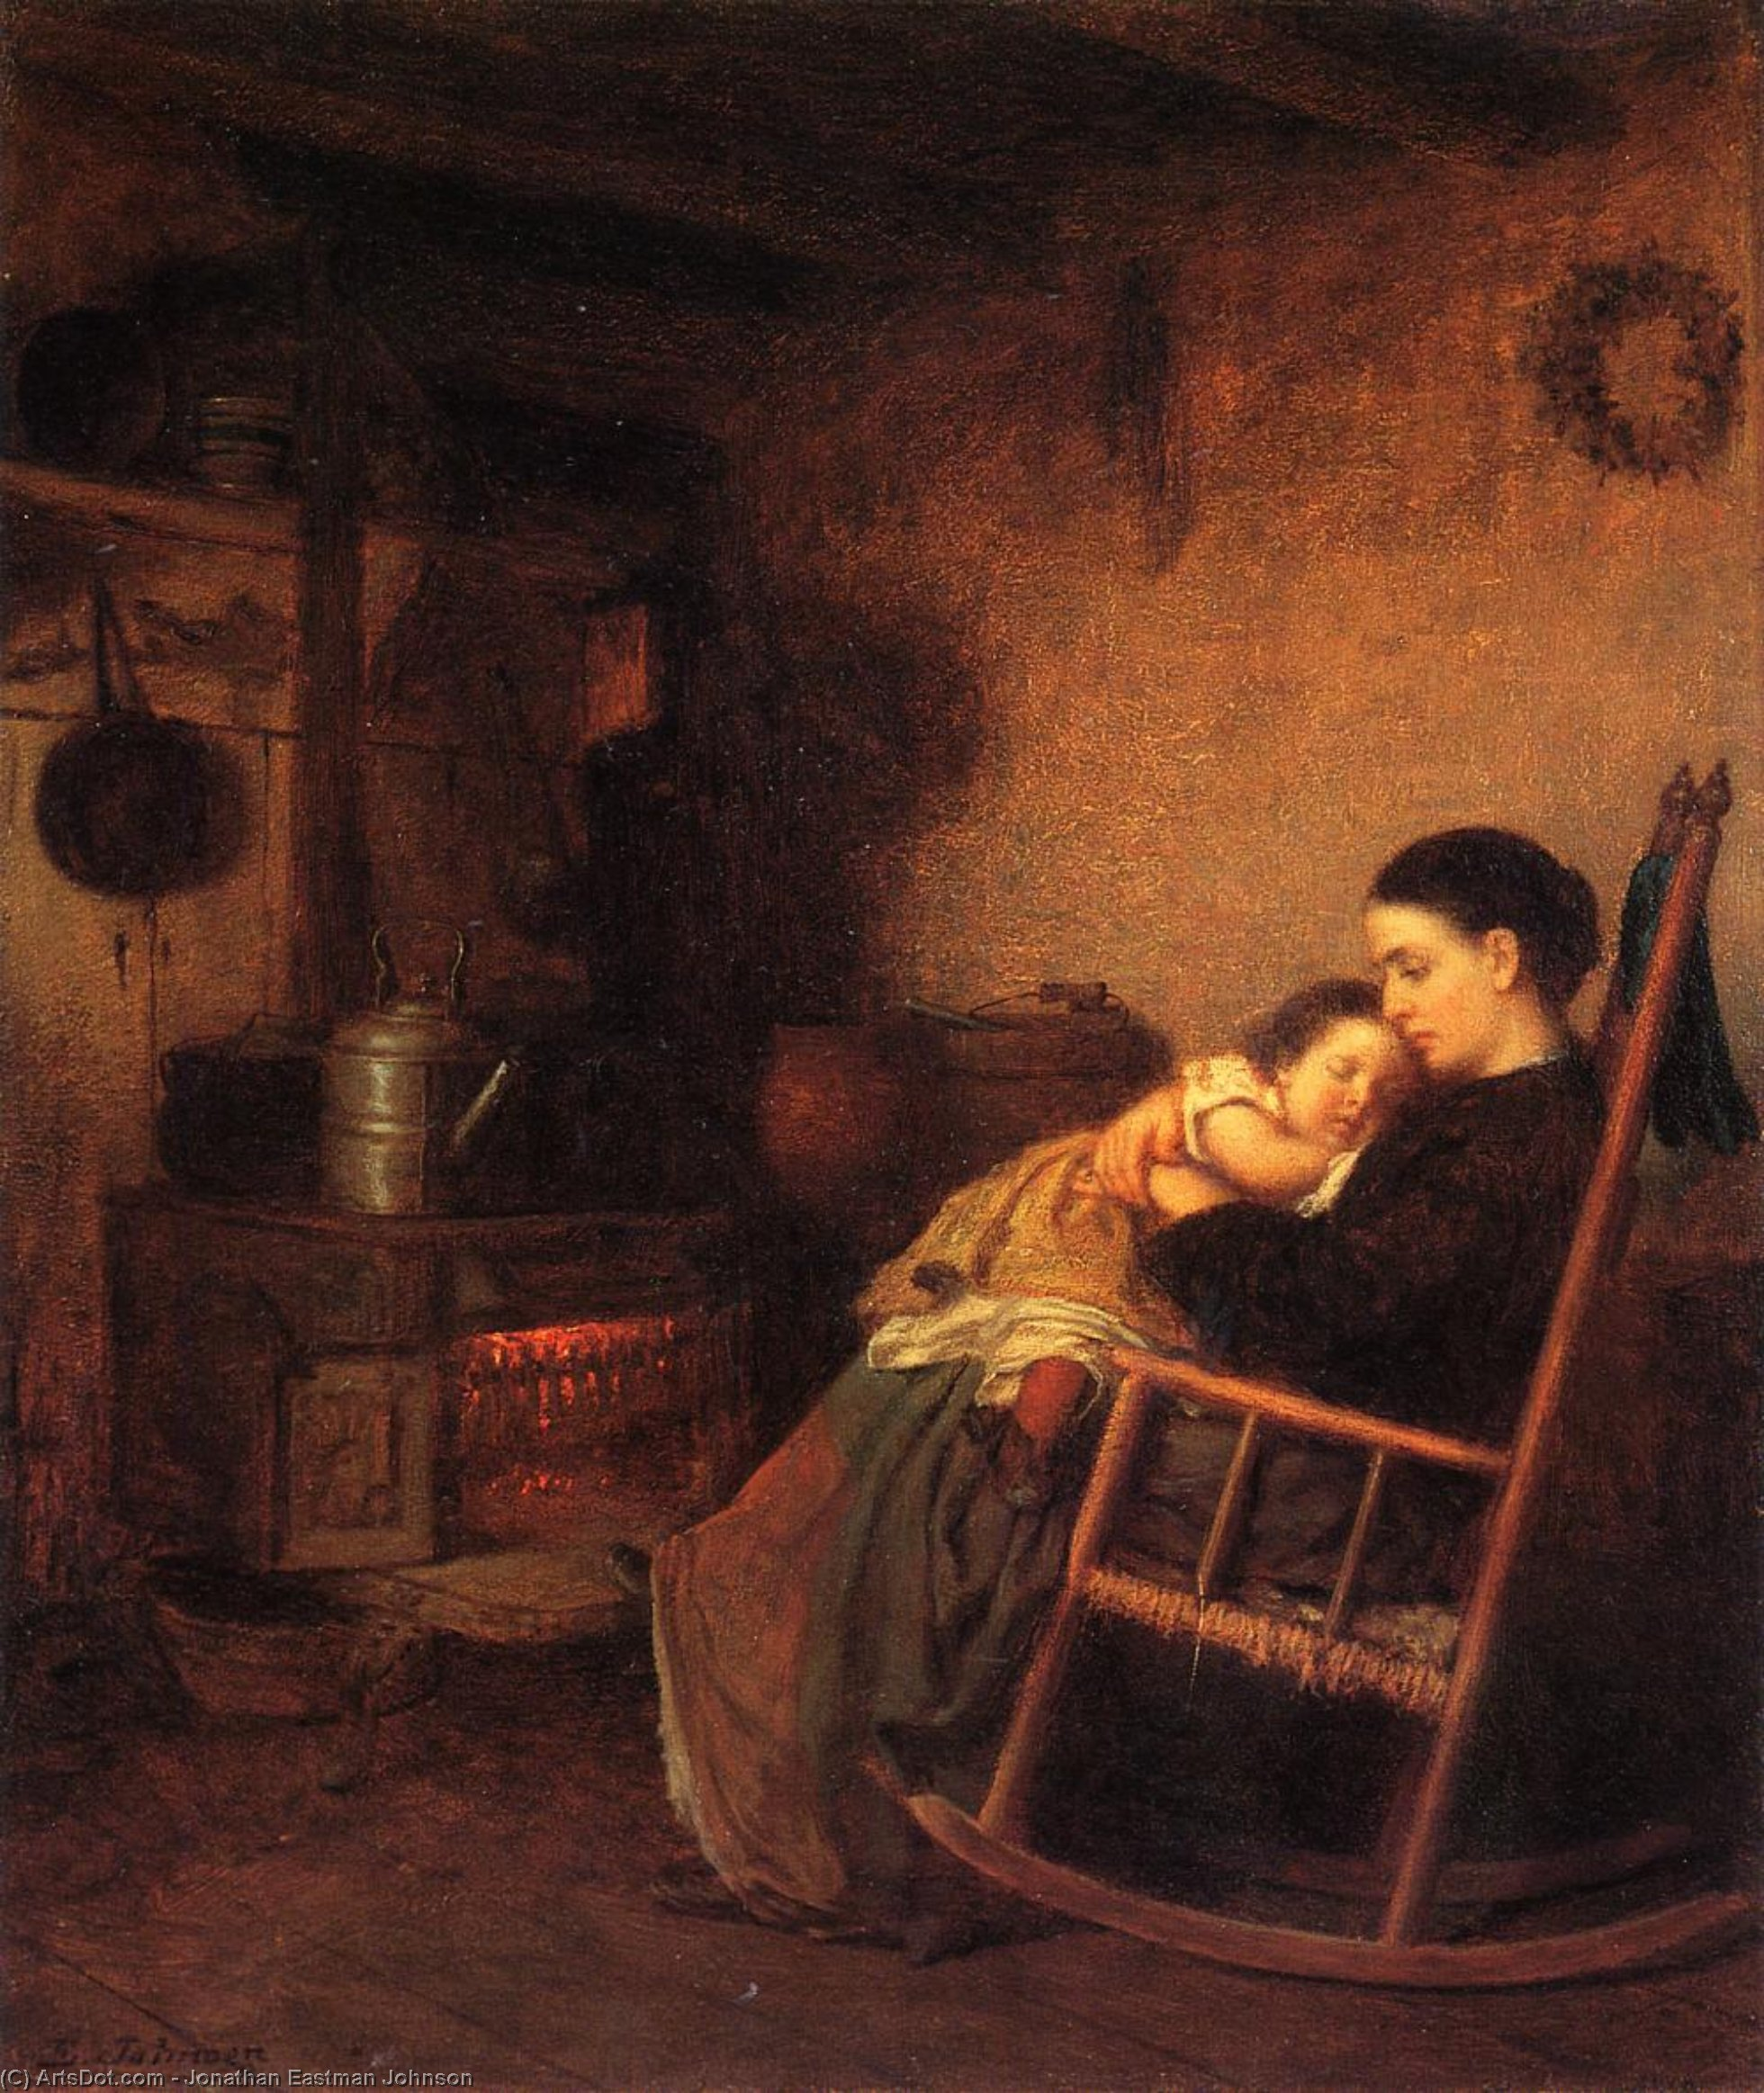 мать и ребенок по Jonathan Eastman Johnson (1824-1906, United Kingdom) | Картина Копия | ArtsDot.com